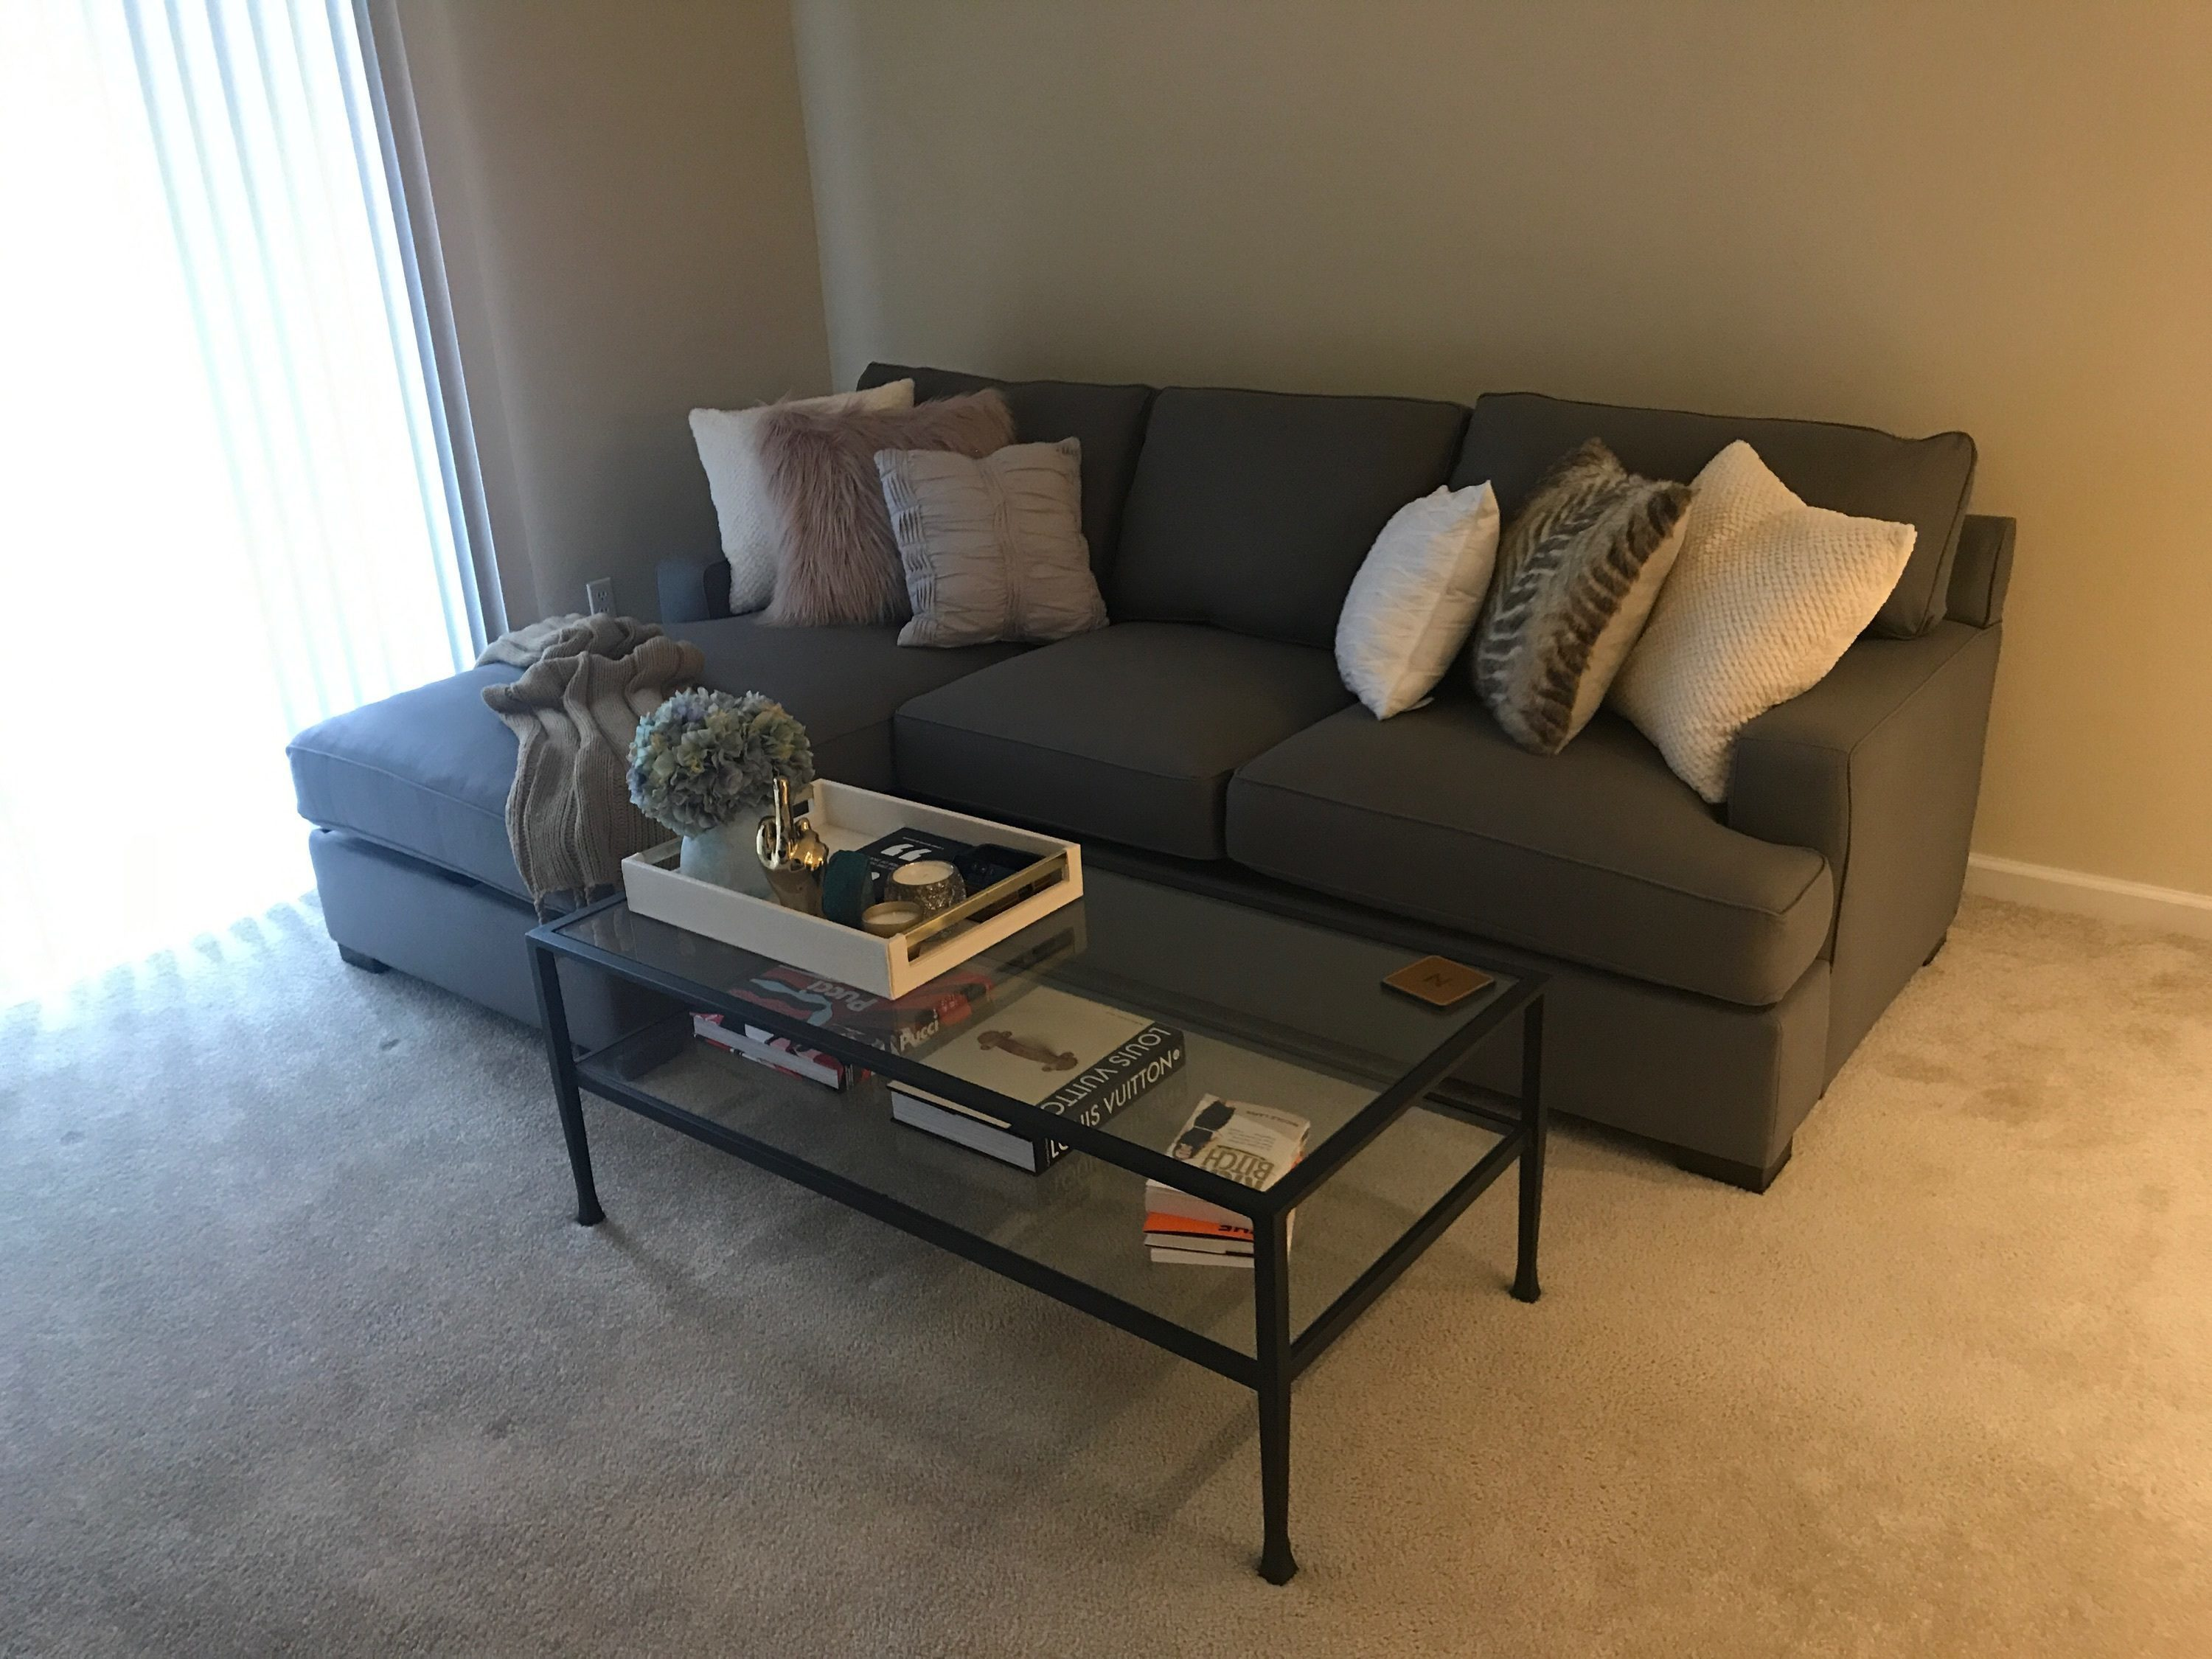 Top 655 Reviews And Complaints About Pottery Barn : townsend sectional - Sectionals, Sofas & Couches